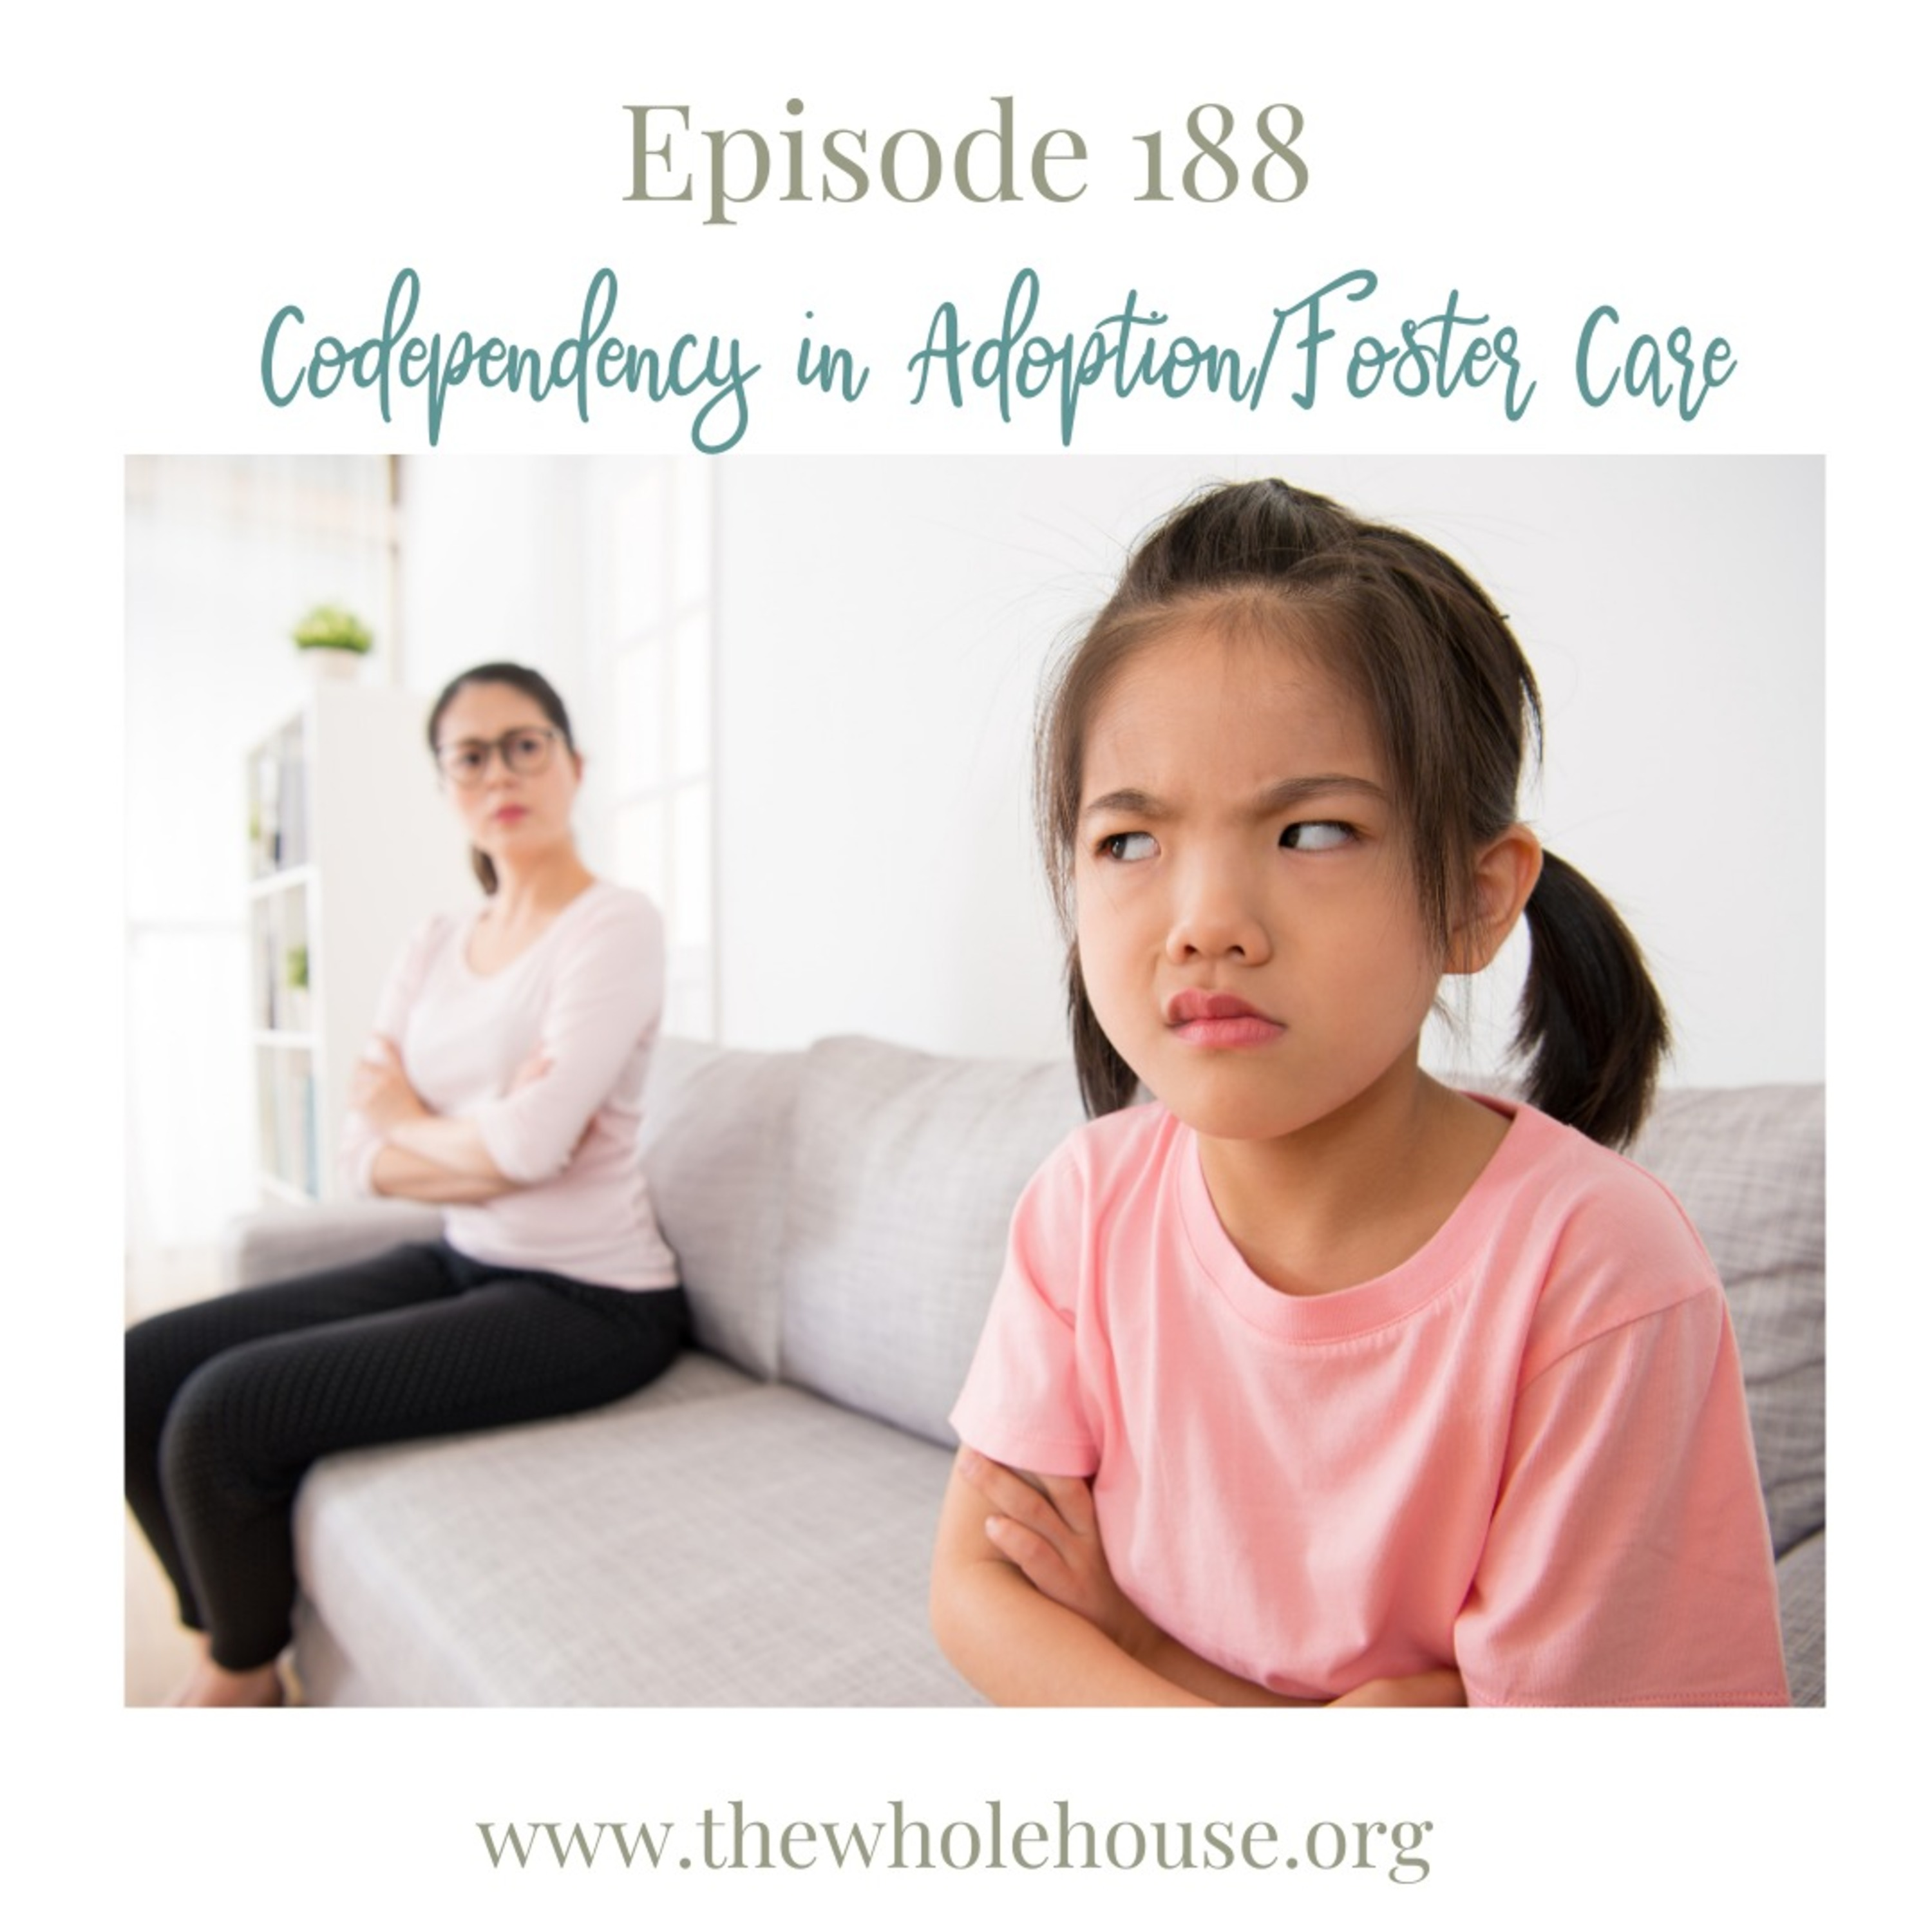 Episode 188 -Codependency in Adoption/Foster Care